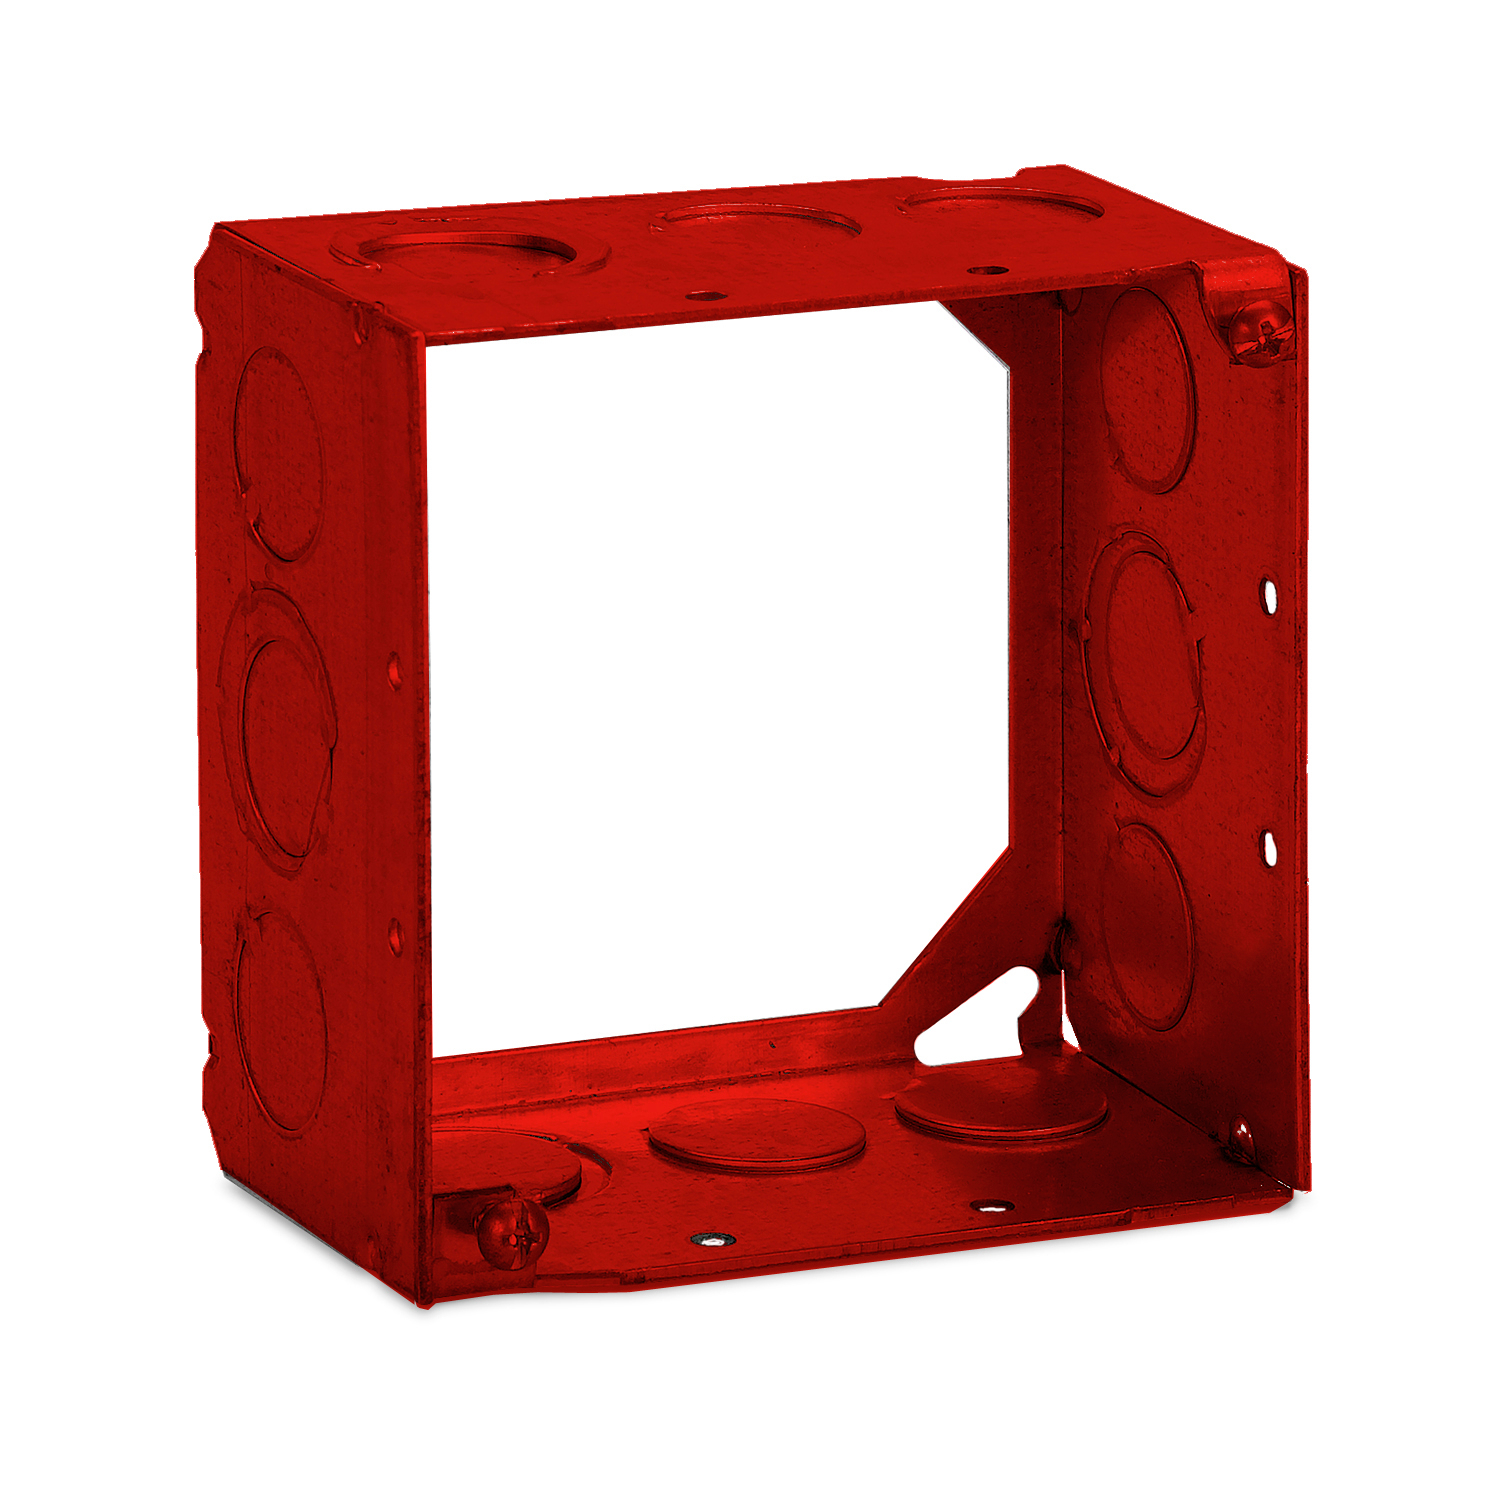 2-1/8 INDEEP 4-SQ RED EXT RING